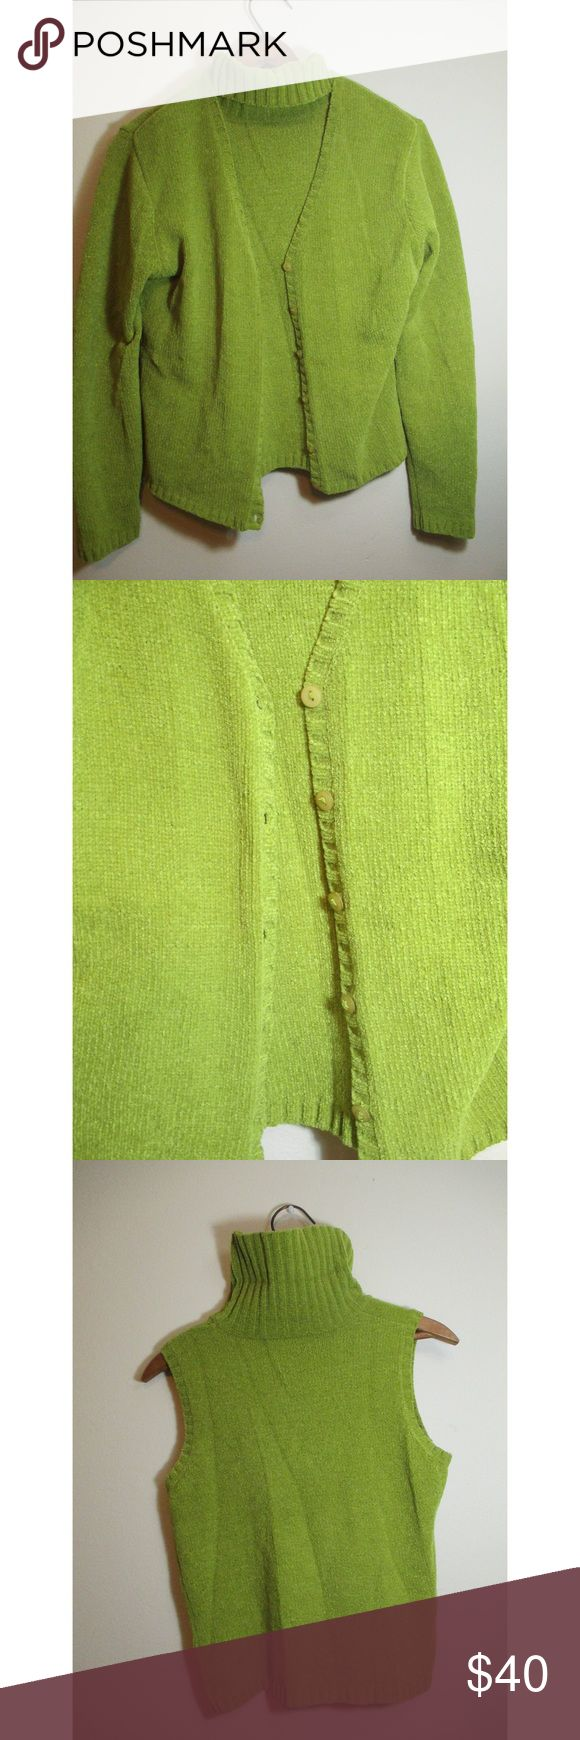 Tomfoolery green turtle neck sleeveless sweater Super soft Tomfoolery green turtle neck sleeveless sweater with button up cardigan. I do not do trades but I do accept reasonable offers. tomfoolery Sweaters Cardigans